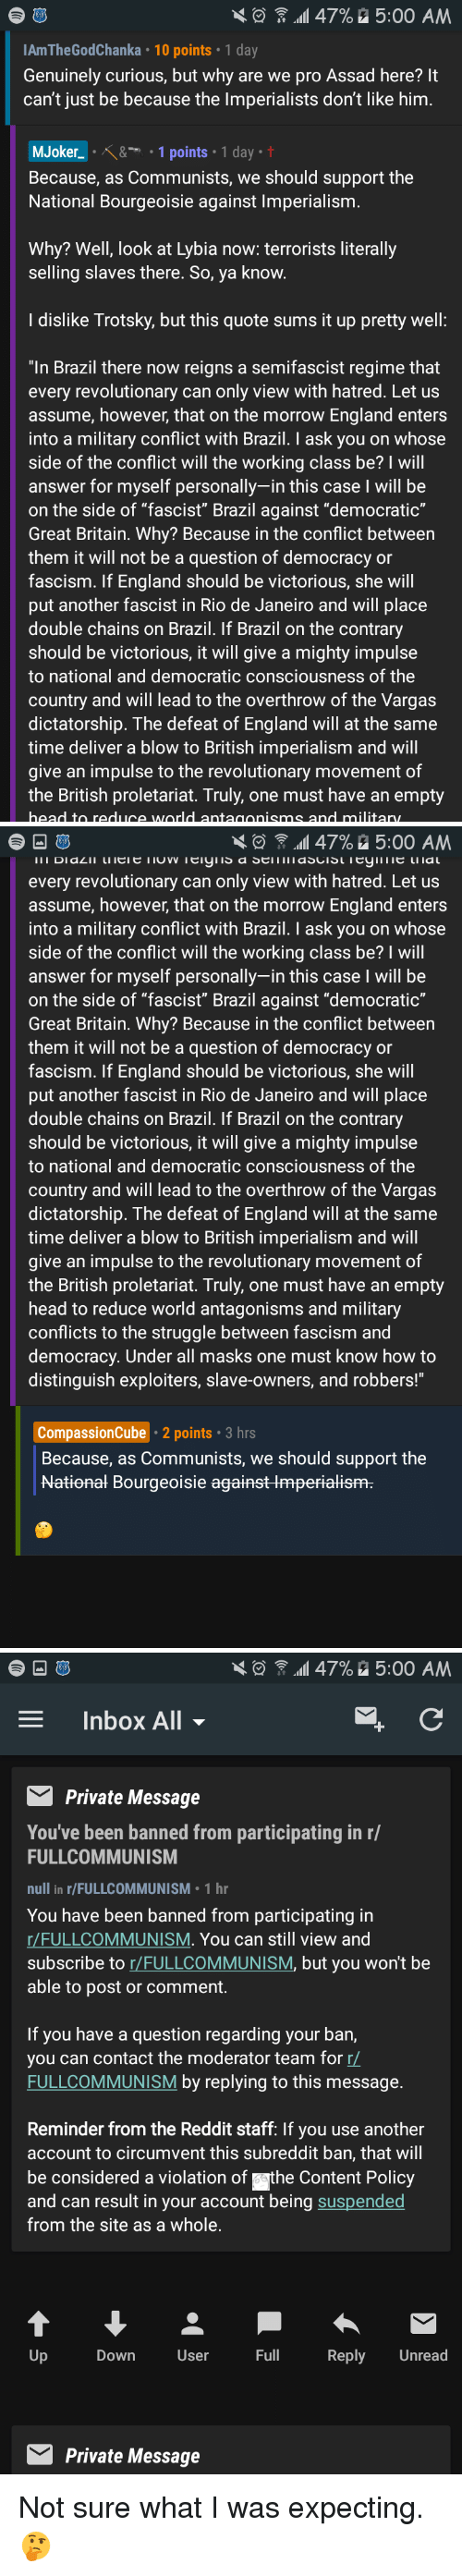 """England, Head, and Lol: \  .11 47%  5:00 AM  AmTheGodChanka 10 points 1 day  Genuinely curious, but why are we pro Assad here? It  can't just be because the lmperialists don't like him  MJoker_。X&-- . 1 points . 1 day-t  Because, as Communists, we should support the  National Bourgeoisie against Imperialism  Why? Well, look at Lybia now: terrorists literally  selling slaves there. So, ya know  I dislike Trotsky, but this quote sums it up pretty well:  """"In Brazil there now reigns a semifascist regime that  every revolutionary can only view with hatred. Let us  assume, however, that on the morrow England enters  into a military conflict with Brazil. I ask you on whose  side of the conflict will the working class be? I wil  answer for myself personally-in this case I will be  on the side of """"fascist"""" Brazil against """"democratic""""  Great Britain. Why? Because in the conflict between  them it will not be a question of democracy or  fascism. If England should be victorious, she wil  put another fascist in Rio de Janeiro and will place  double chains on Brazil. If Brazil on the contrary  should be victorious, it will give a mighty impulse  to national and democratic consciousness of the  country and will lead to the overthrow of the Vargas  dictatorship. The defeat of England will at the same  time deliver a blow to British imperialism and will  give an impulse to the revolutionary movement of  the British proletariat. Truly, one must have an empty   令.11 47%  5:00 AM  every revolutionary can only view with hatred. Let us  assume, however, that on the morrow England enters  into a military conflict with Brazil. I ask you on whose  side of the conflict will the working class be? I wil  answer for myself personally-in this case I will be  on the side of """"fascist"""" Brazil against """"democratic""""  Great Britain. Why? Because in the conflict between  them it will not be a question of democracy or  fascism. If England should be victorious, she wil  put another fascist in Rio de Janeir"""